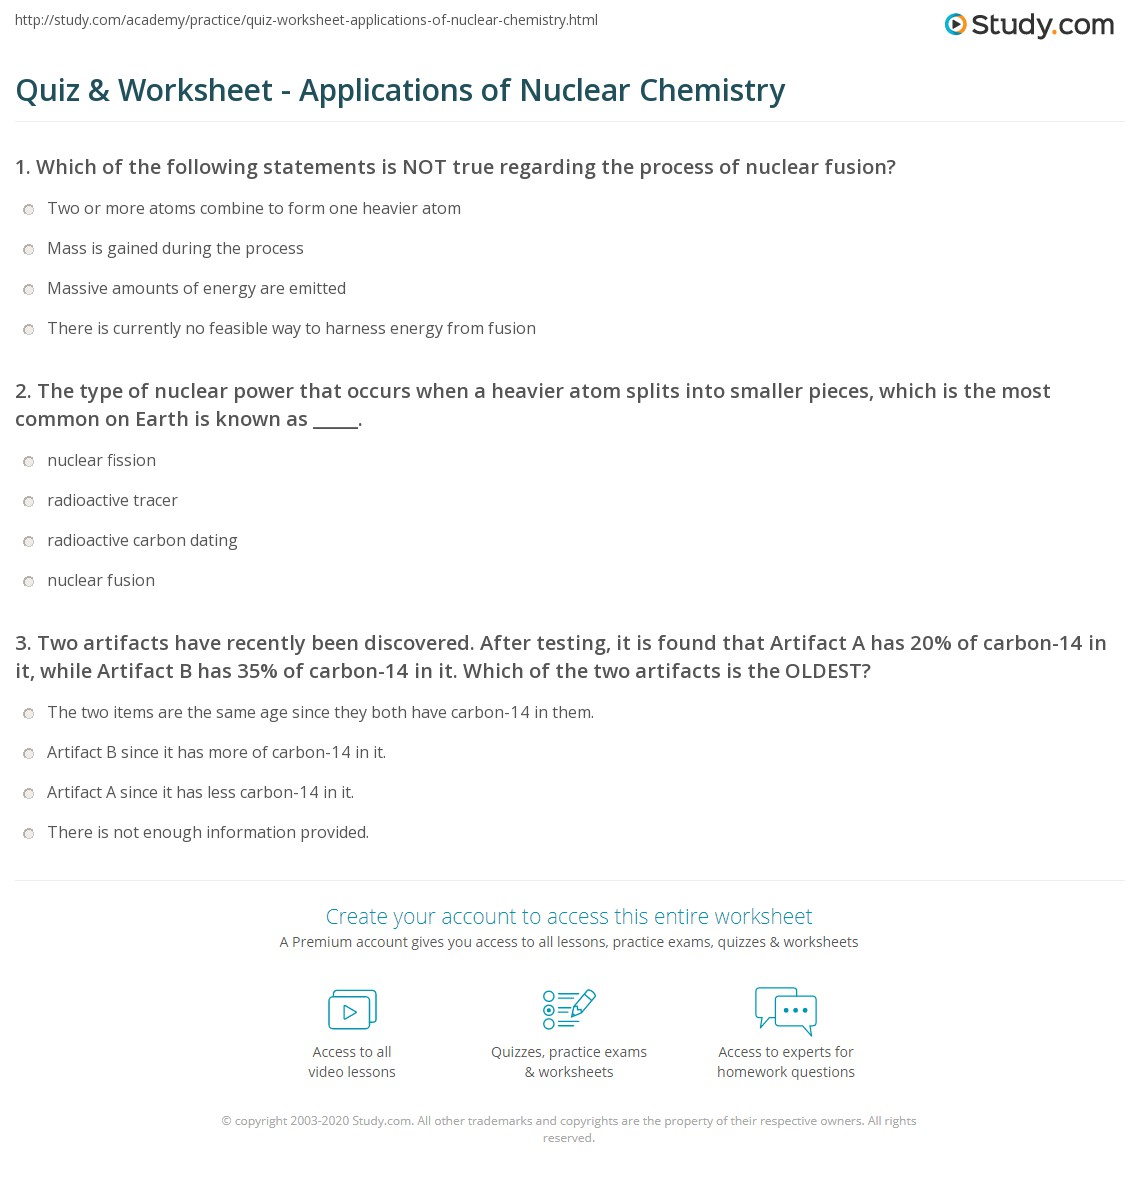 Printables Nuclear Chemistry Worksheet quiz worksheet applications of nuclear chemistry study com print fusion fission carbon dating tracers imaging worksheet